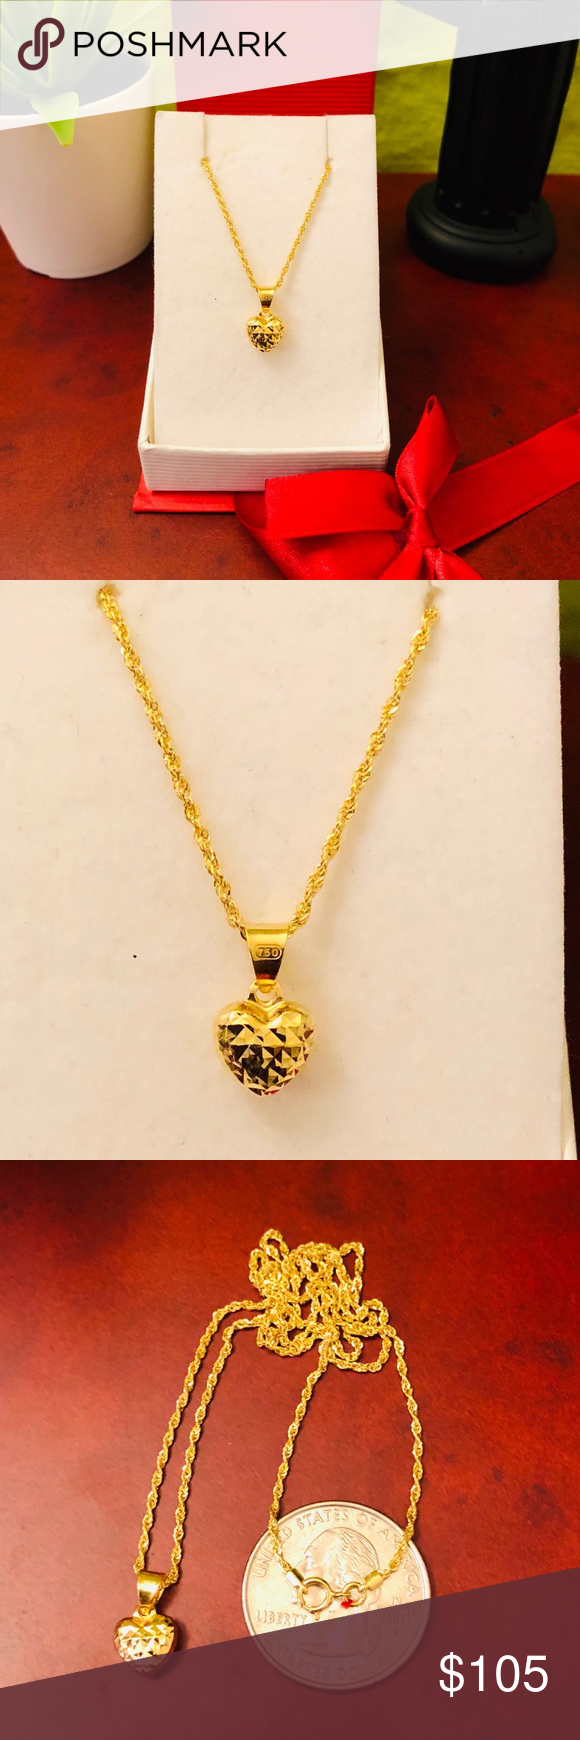 18k Real Saudi Gold Heart Pendant Necklace Price Is Firm Made Of 100 18k Real Gold Lightweight Dia Heart Pendant Gold Heart Pendant Necklace Necklace Price